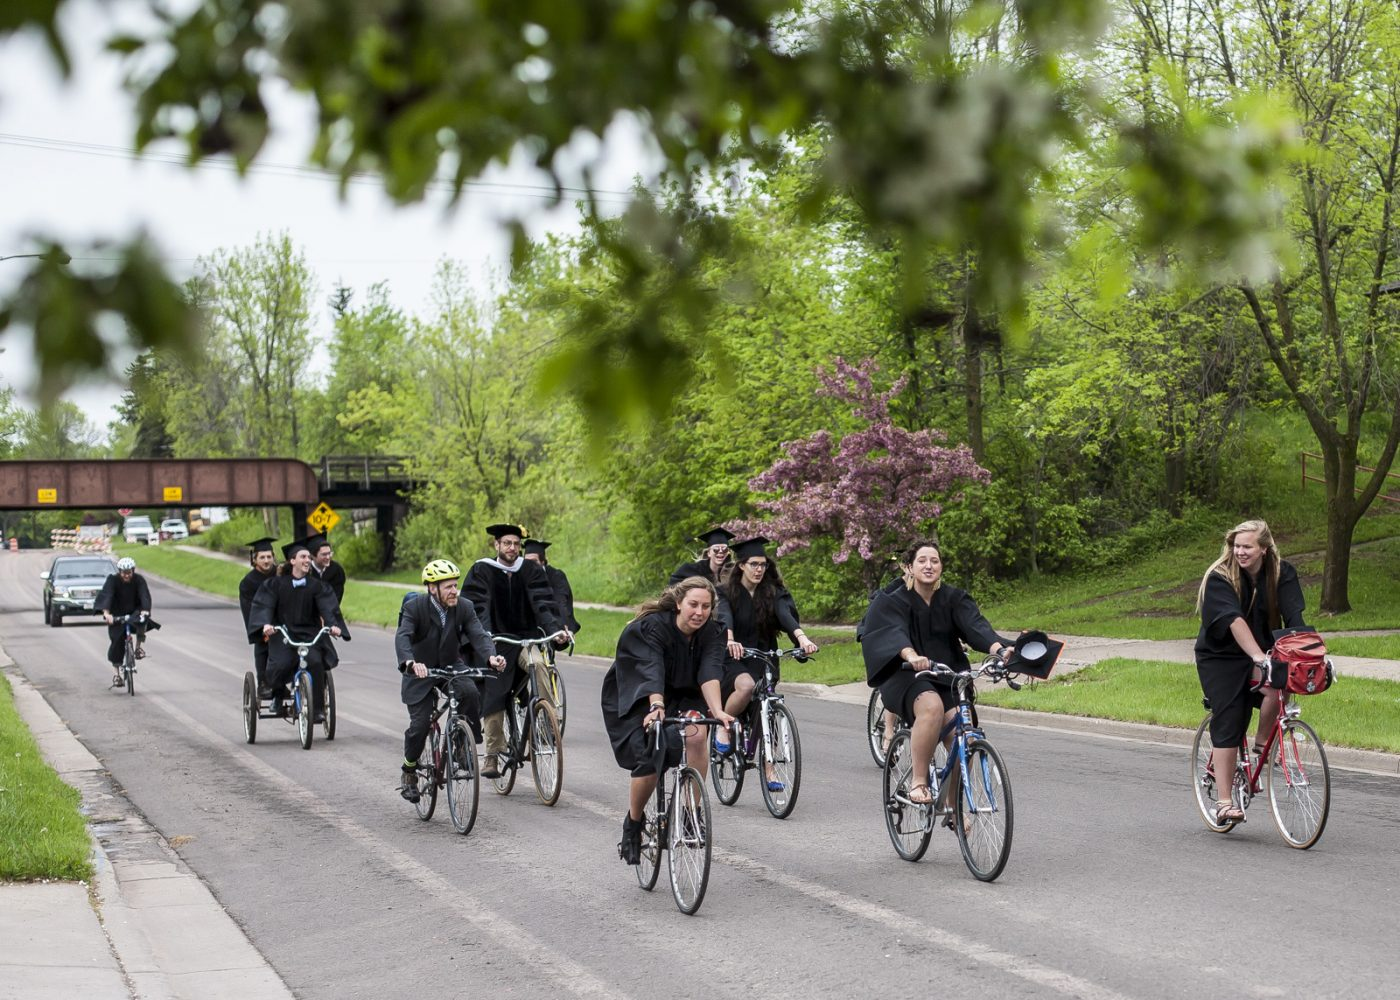 Students bike on street in cap and gown